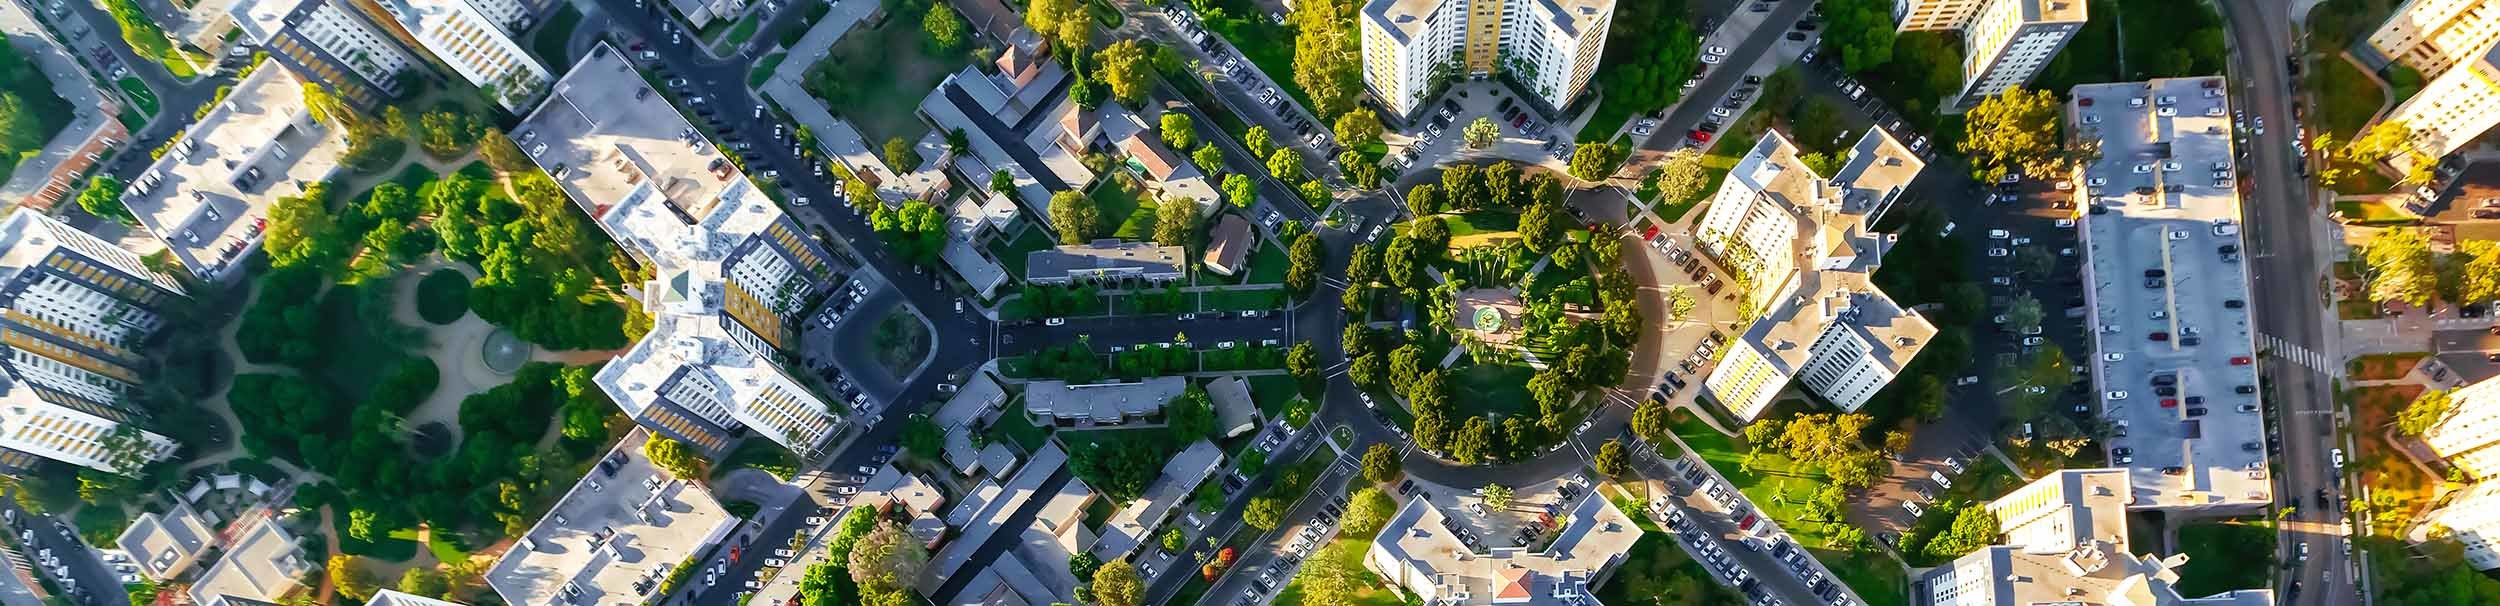 Aerial view of city with trees